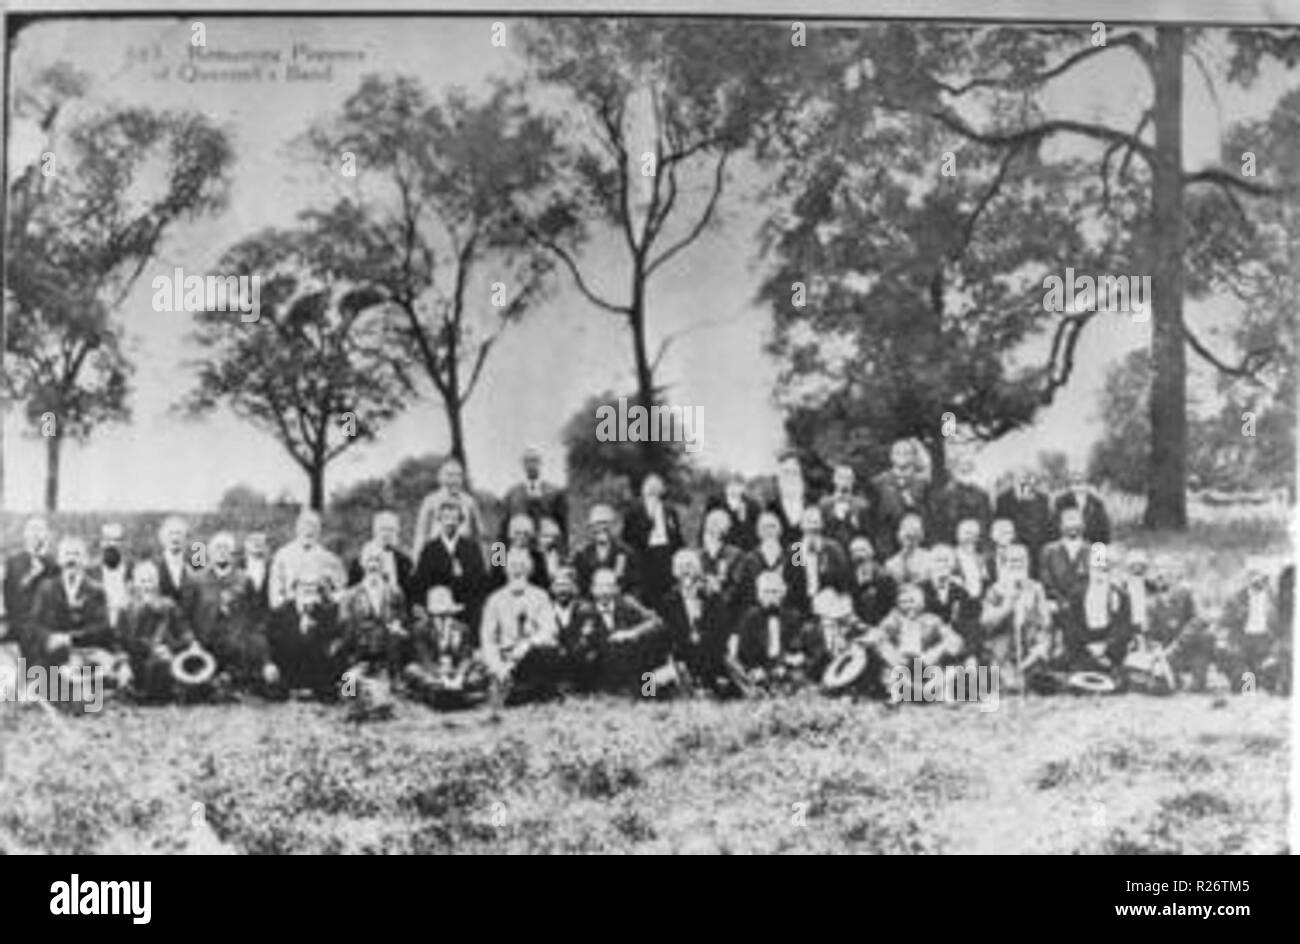 Reunion of Quantrill's Raiders. The first official reunion occurred in 1898, more than 30 years after Quantrill's death and the end of the Civil War. - Stock Image